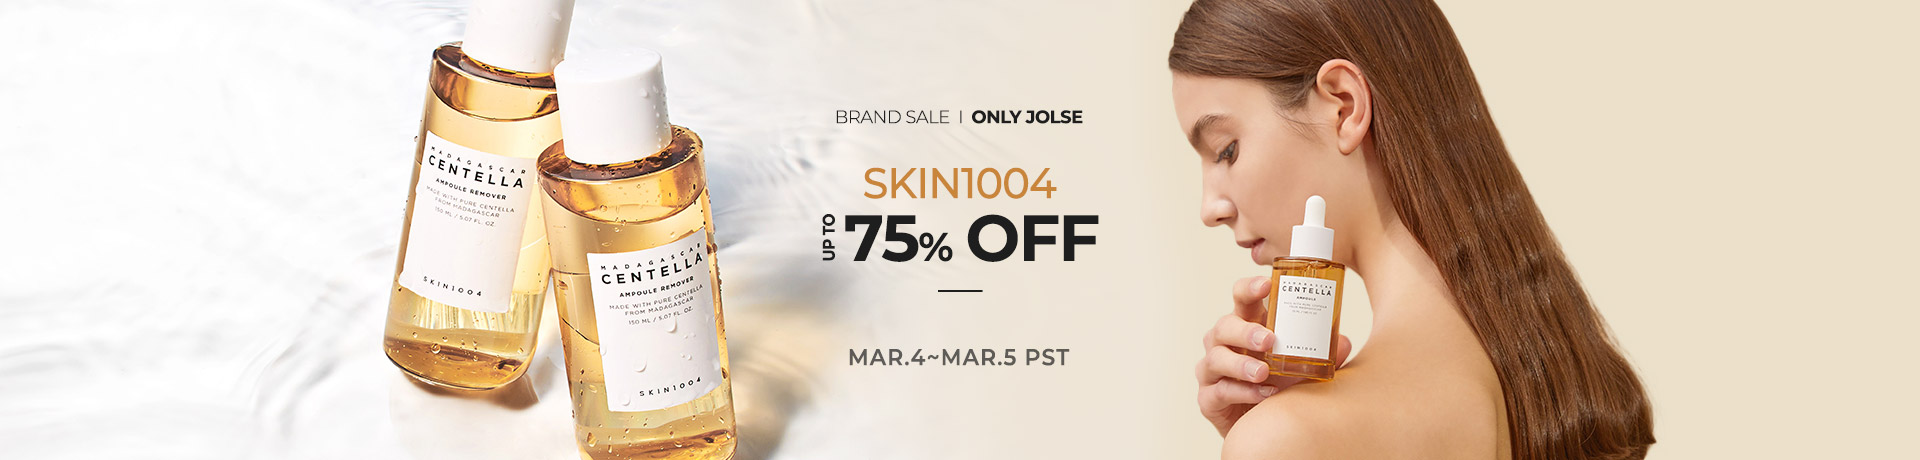 SKIN1004 Up to 75% OFF